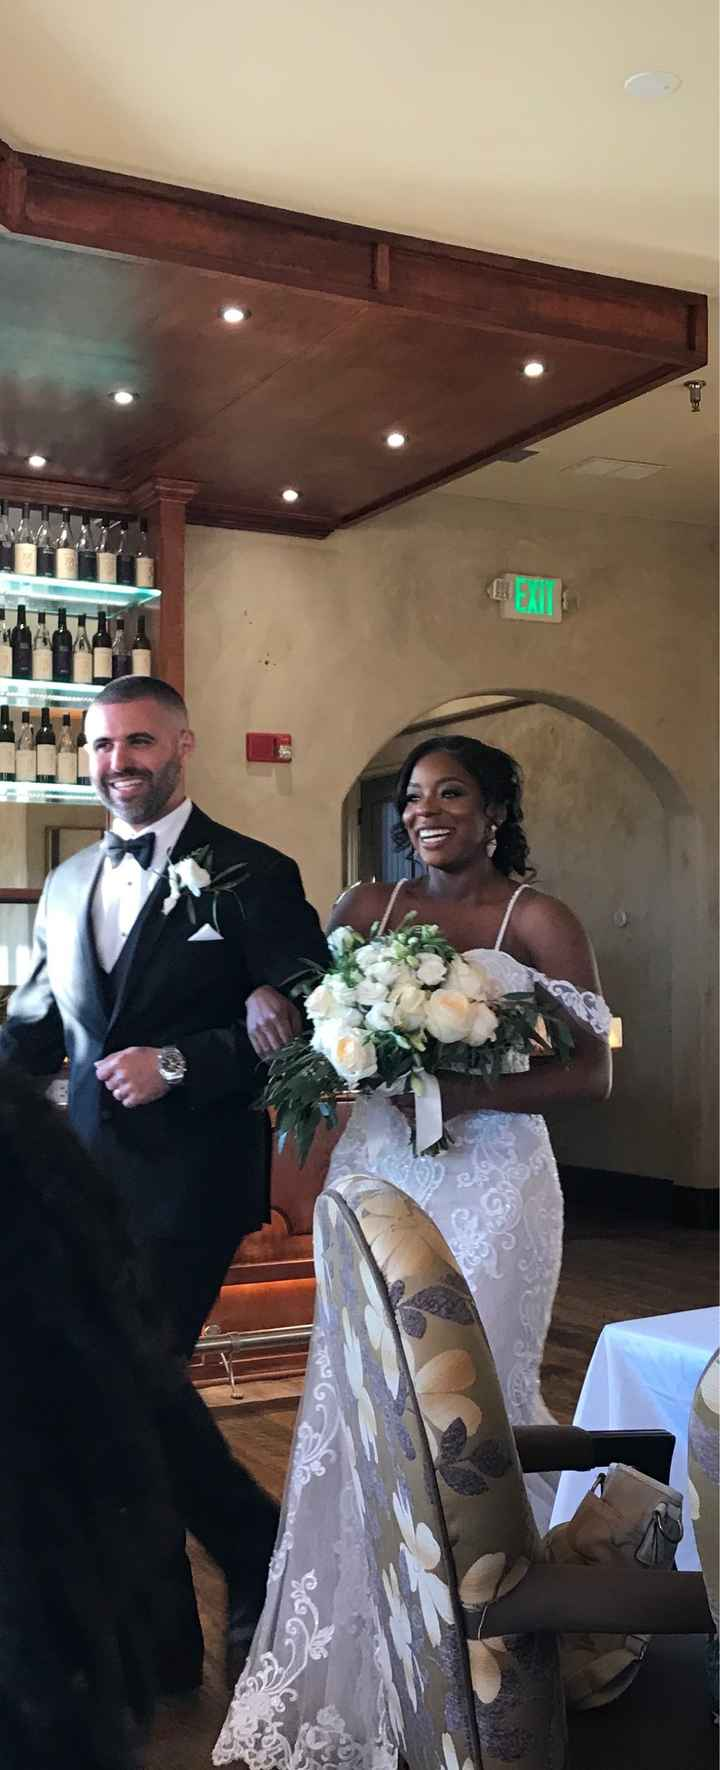 We did it!! 4.22.21 - 4